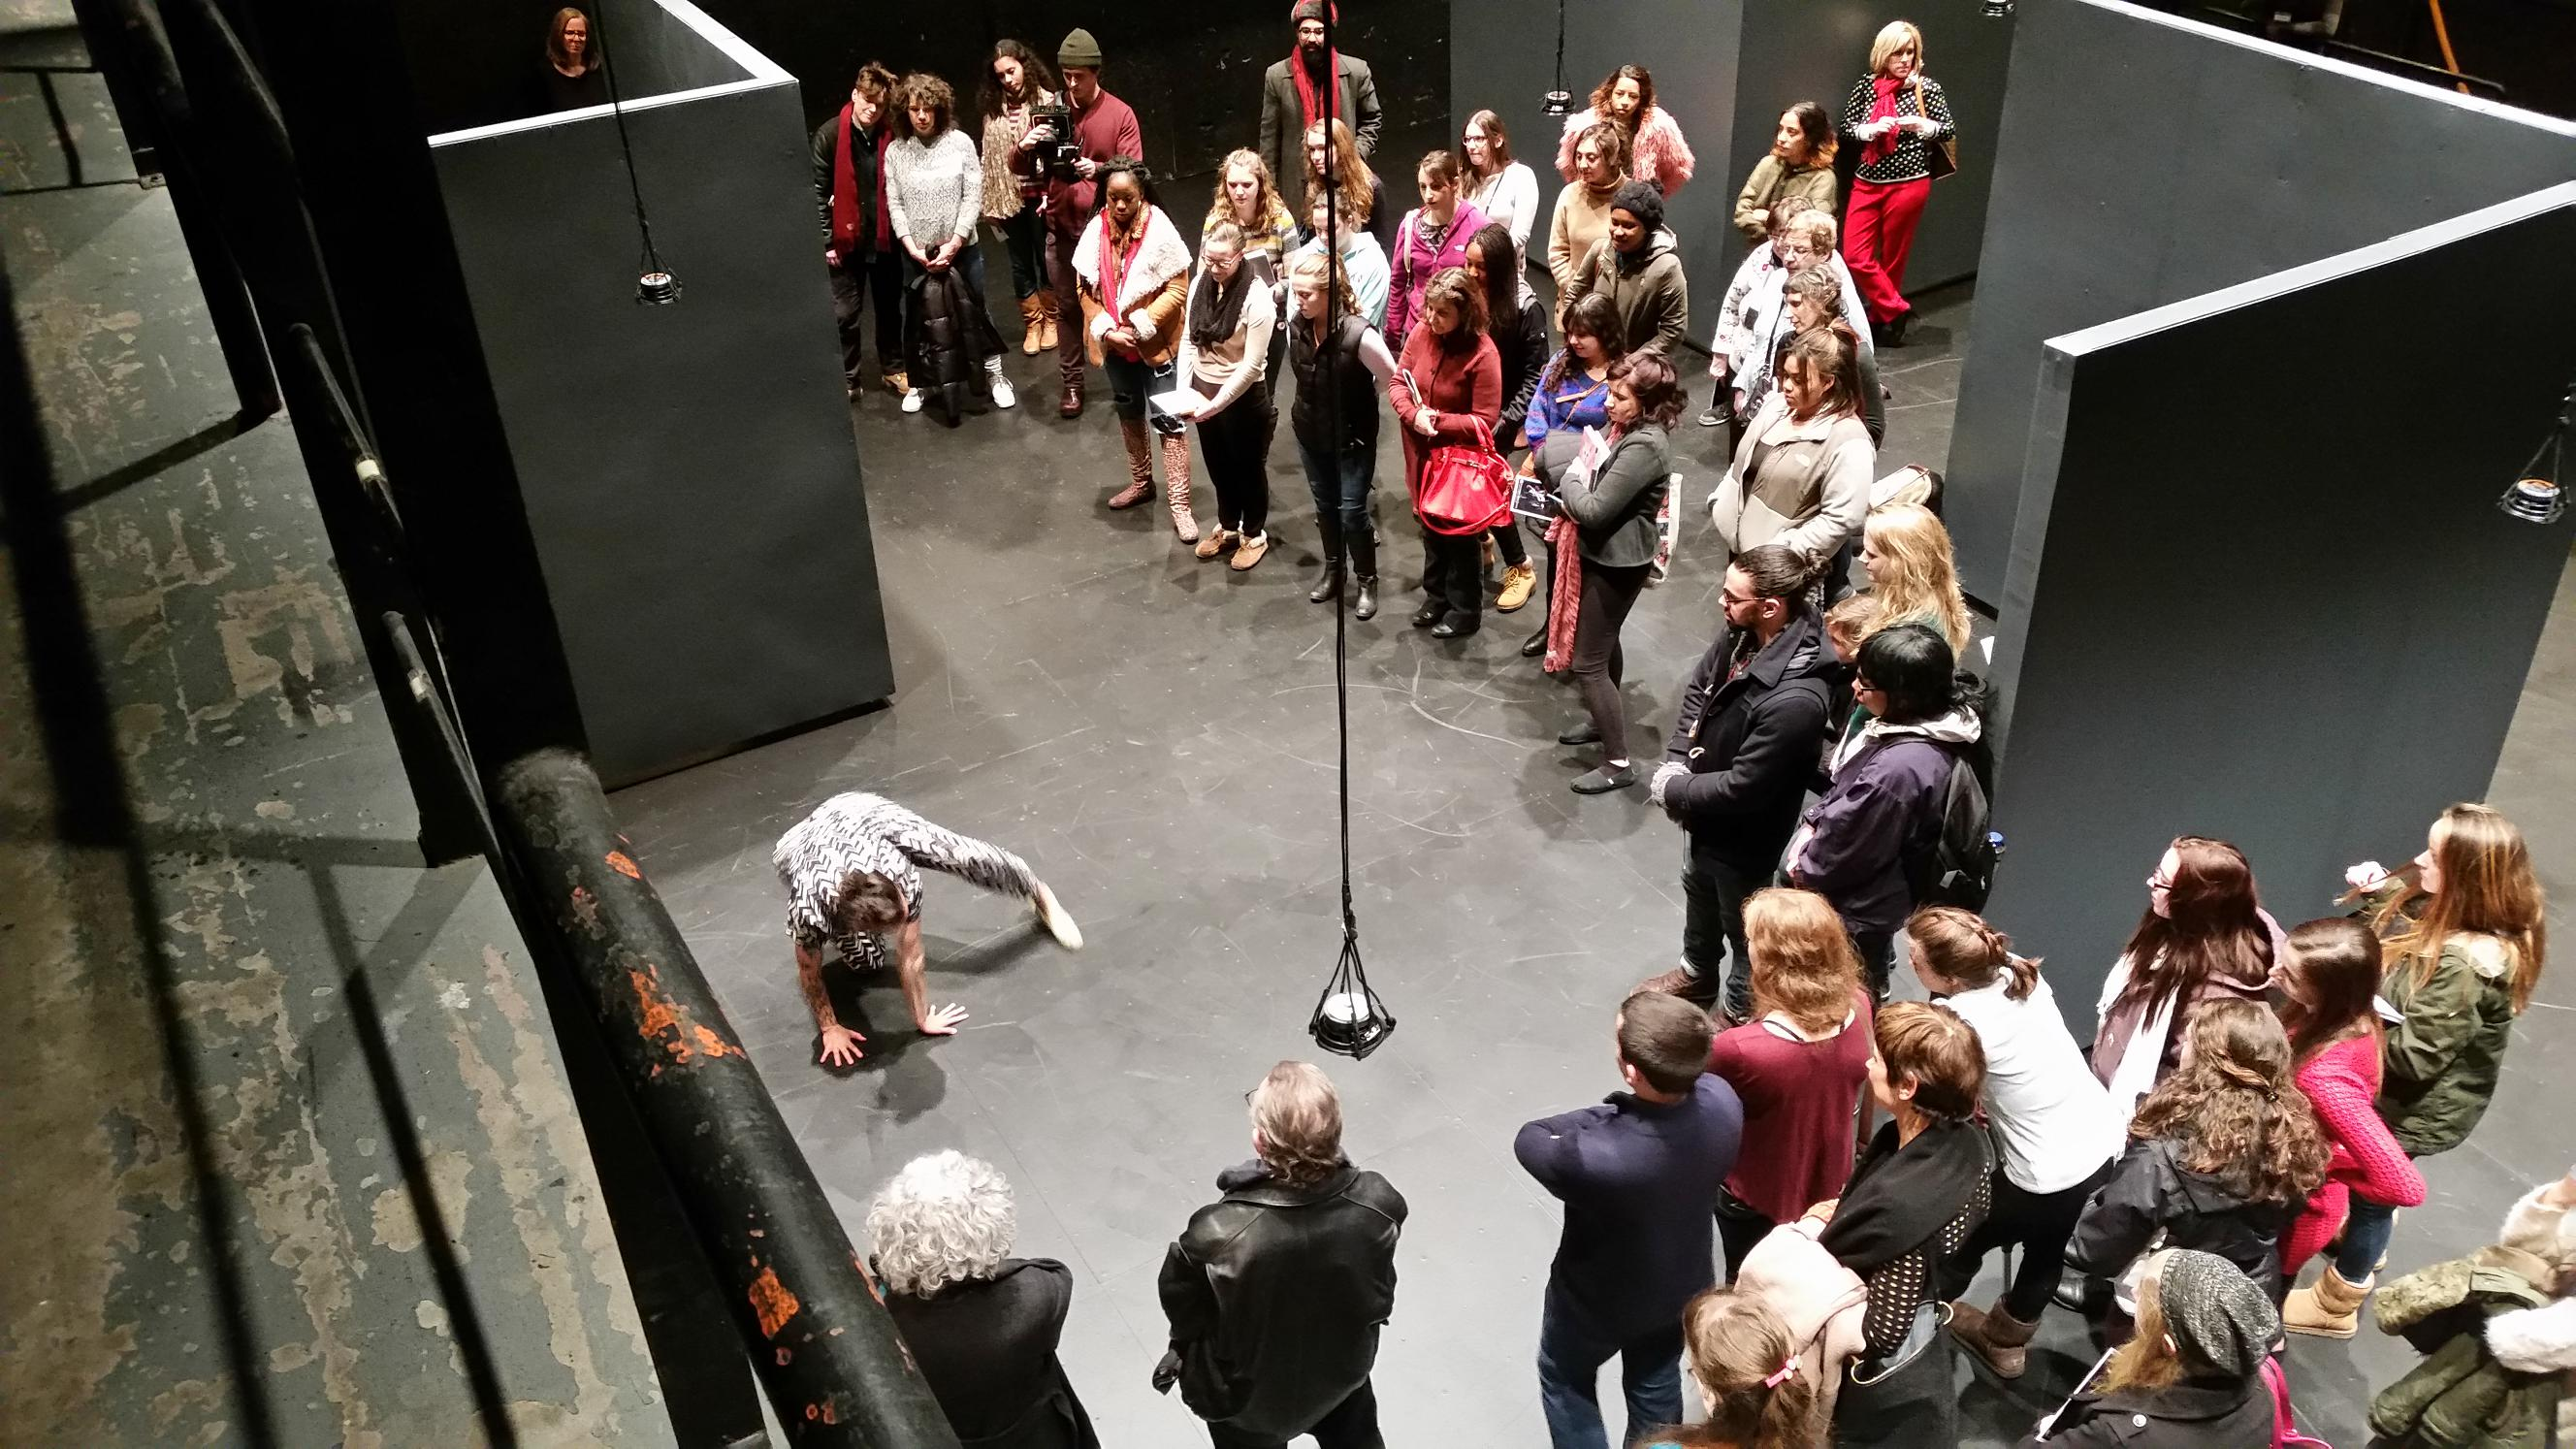 audience members watch the first performer as she begins to move-50%